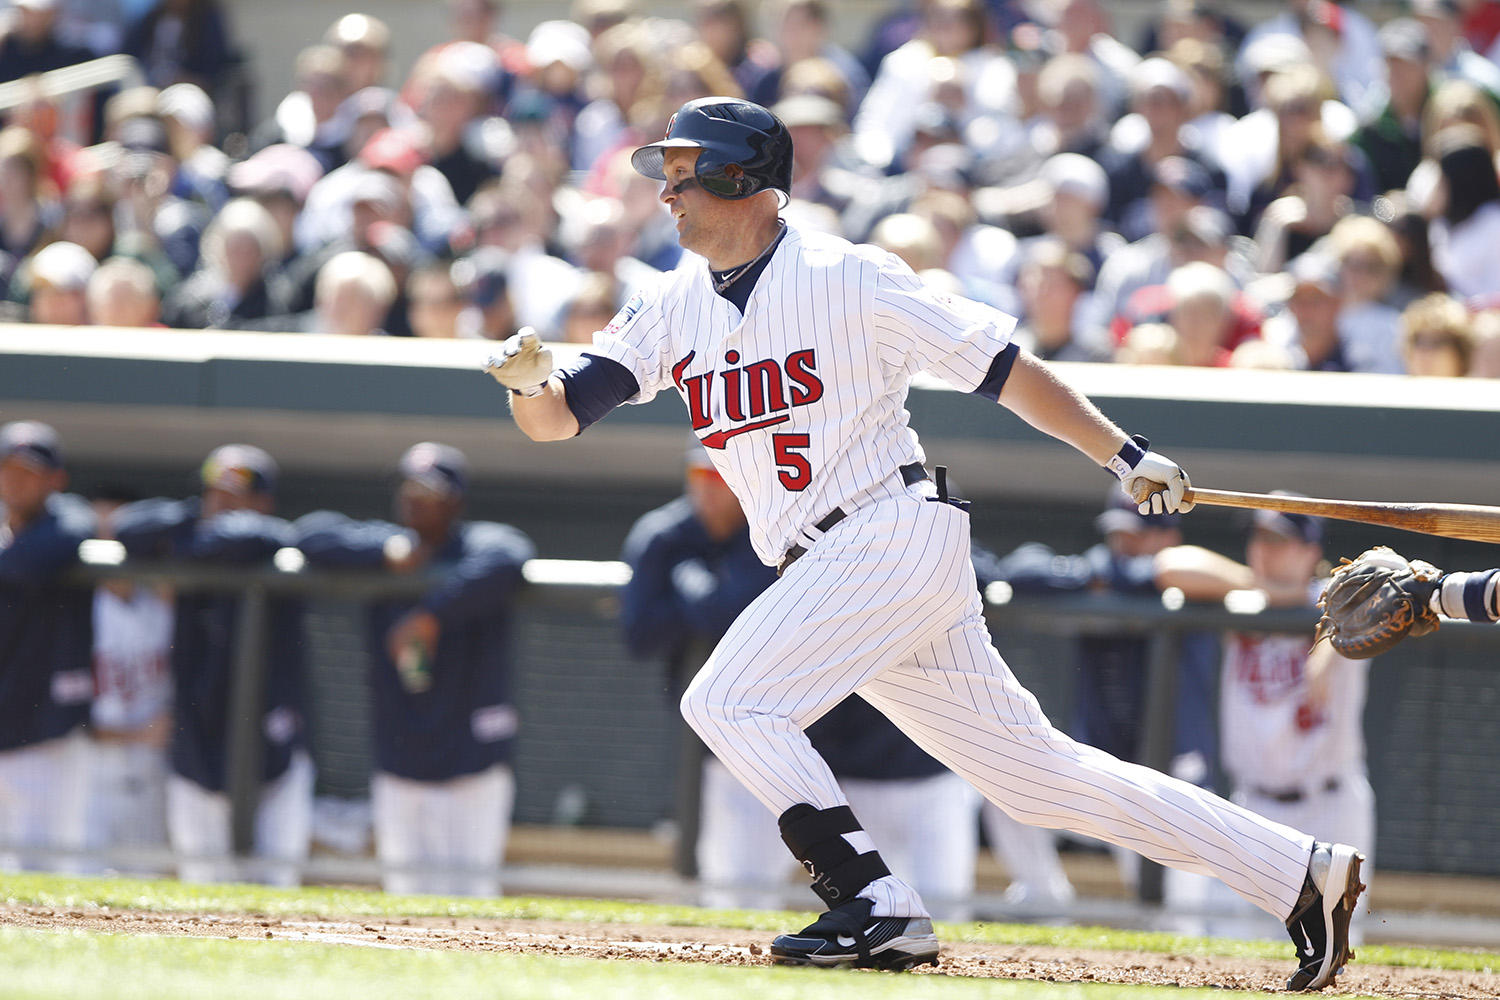 Michael Cuddyer started his career with the Minnesota Twins in 2001 and would play with the team for 11 seasons. (MN Twins / Photographer Bruce Kluckhohn)